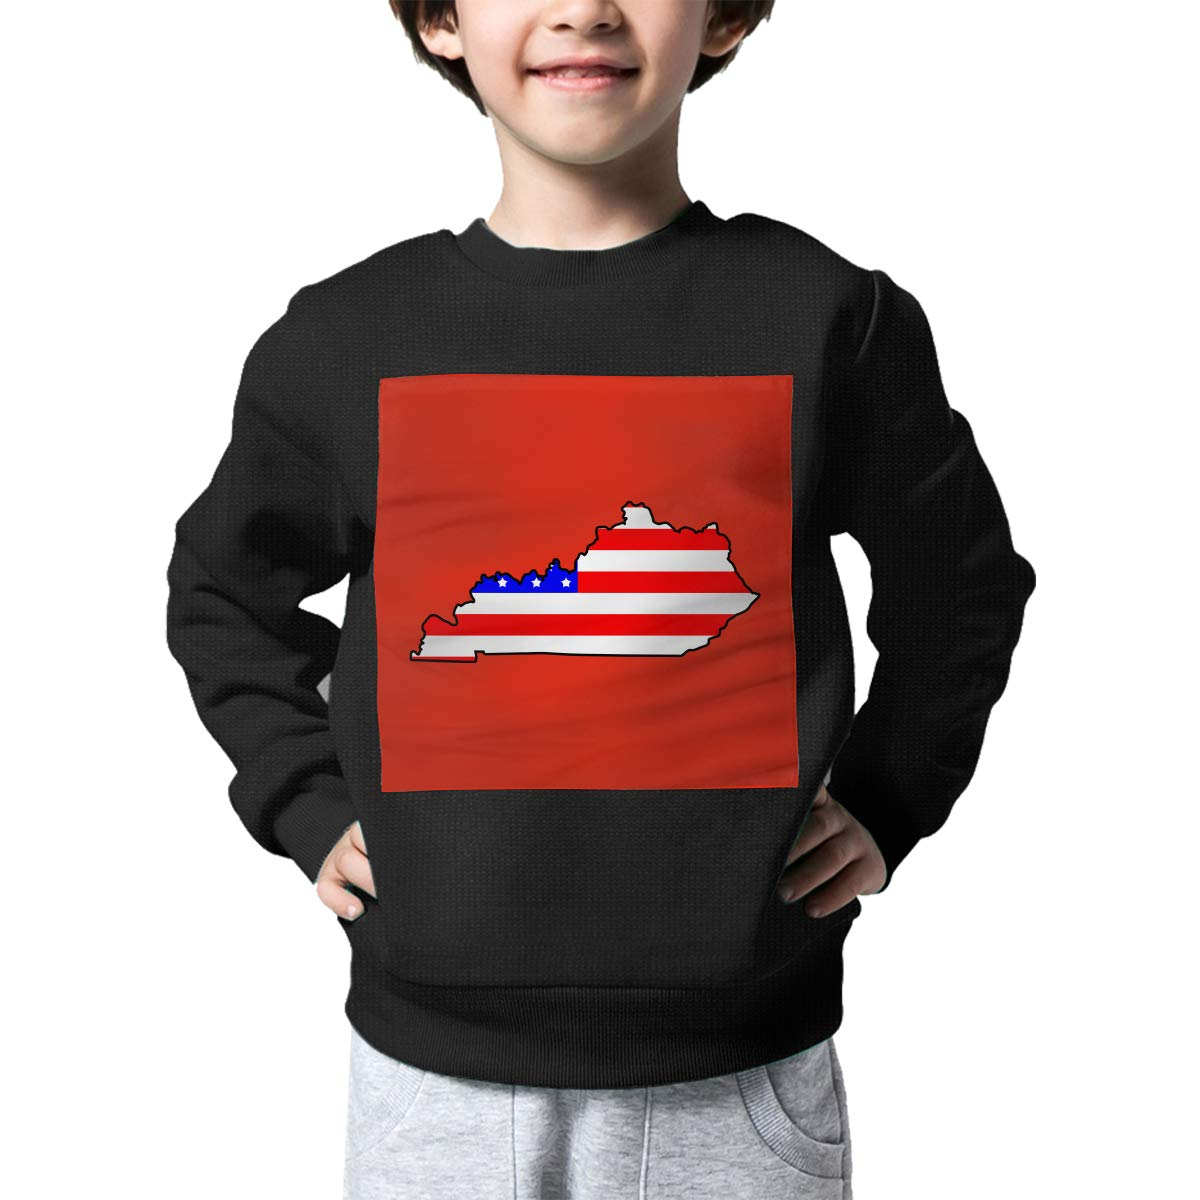 Childrens State of Kentucky Map American Flag Sweater Kids Pullover Sweaters